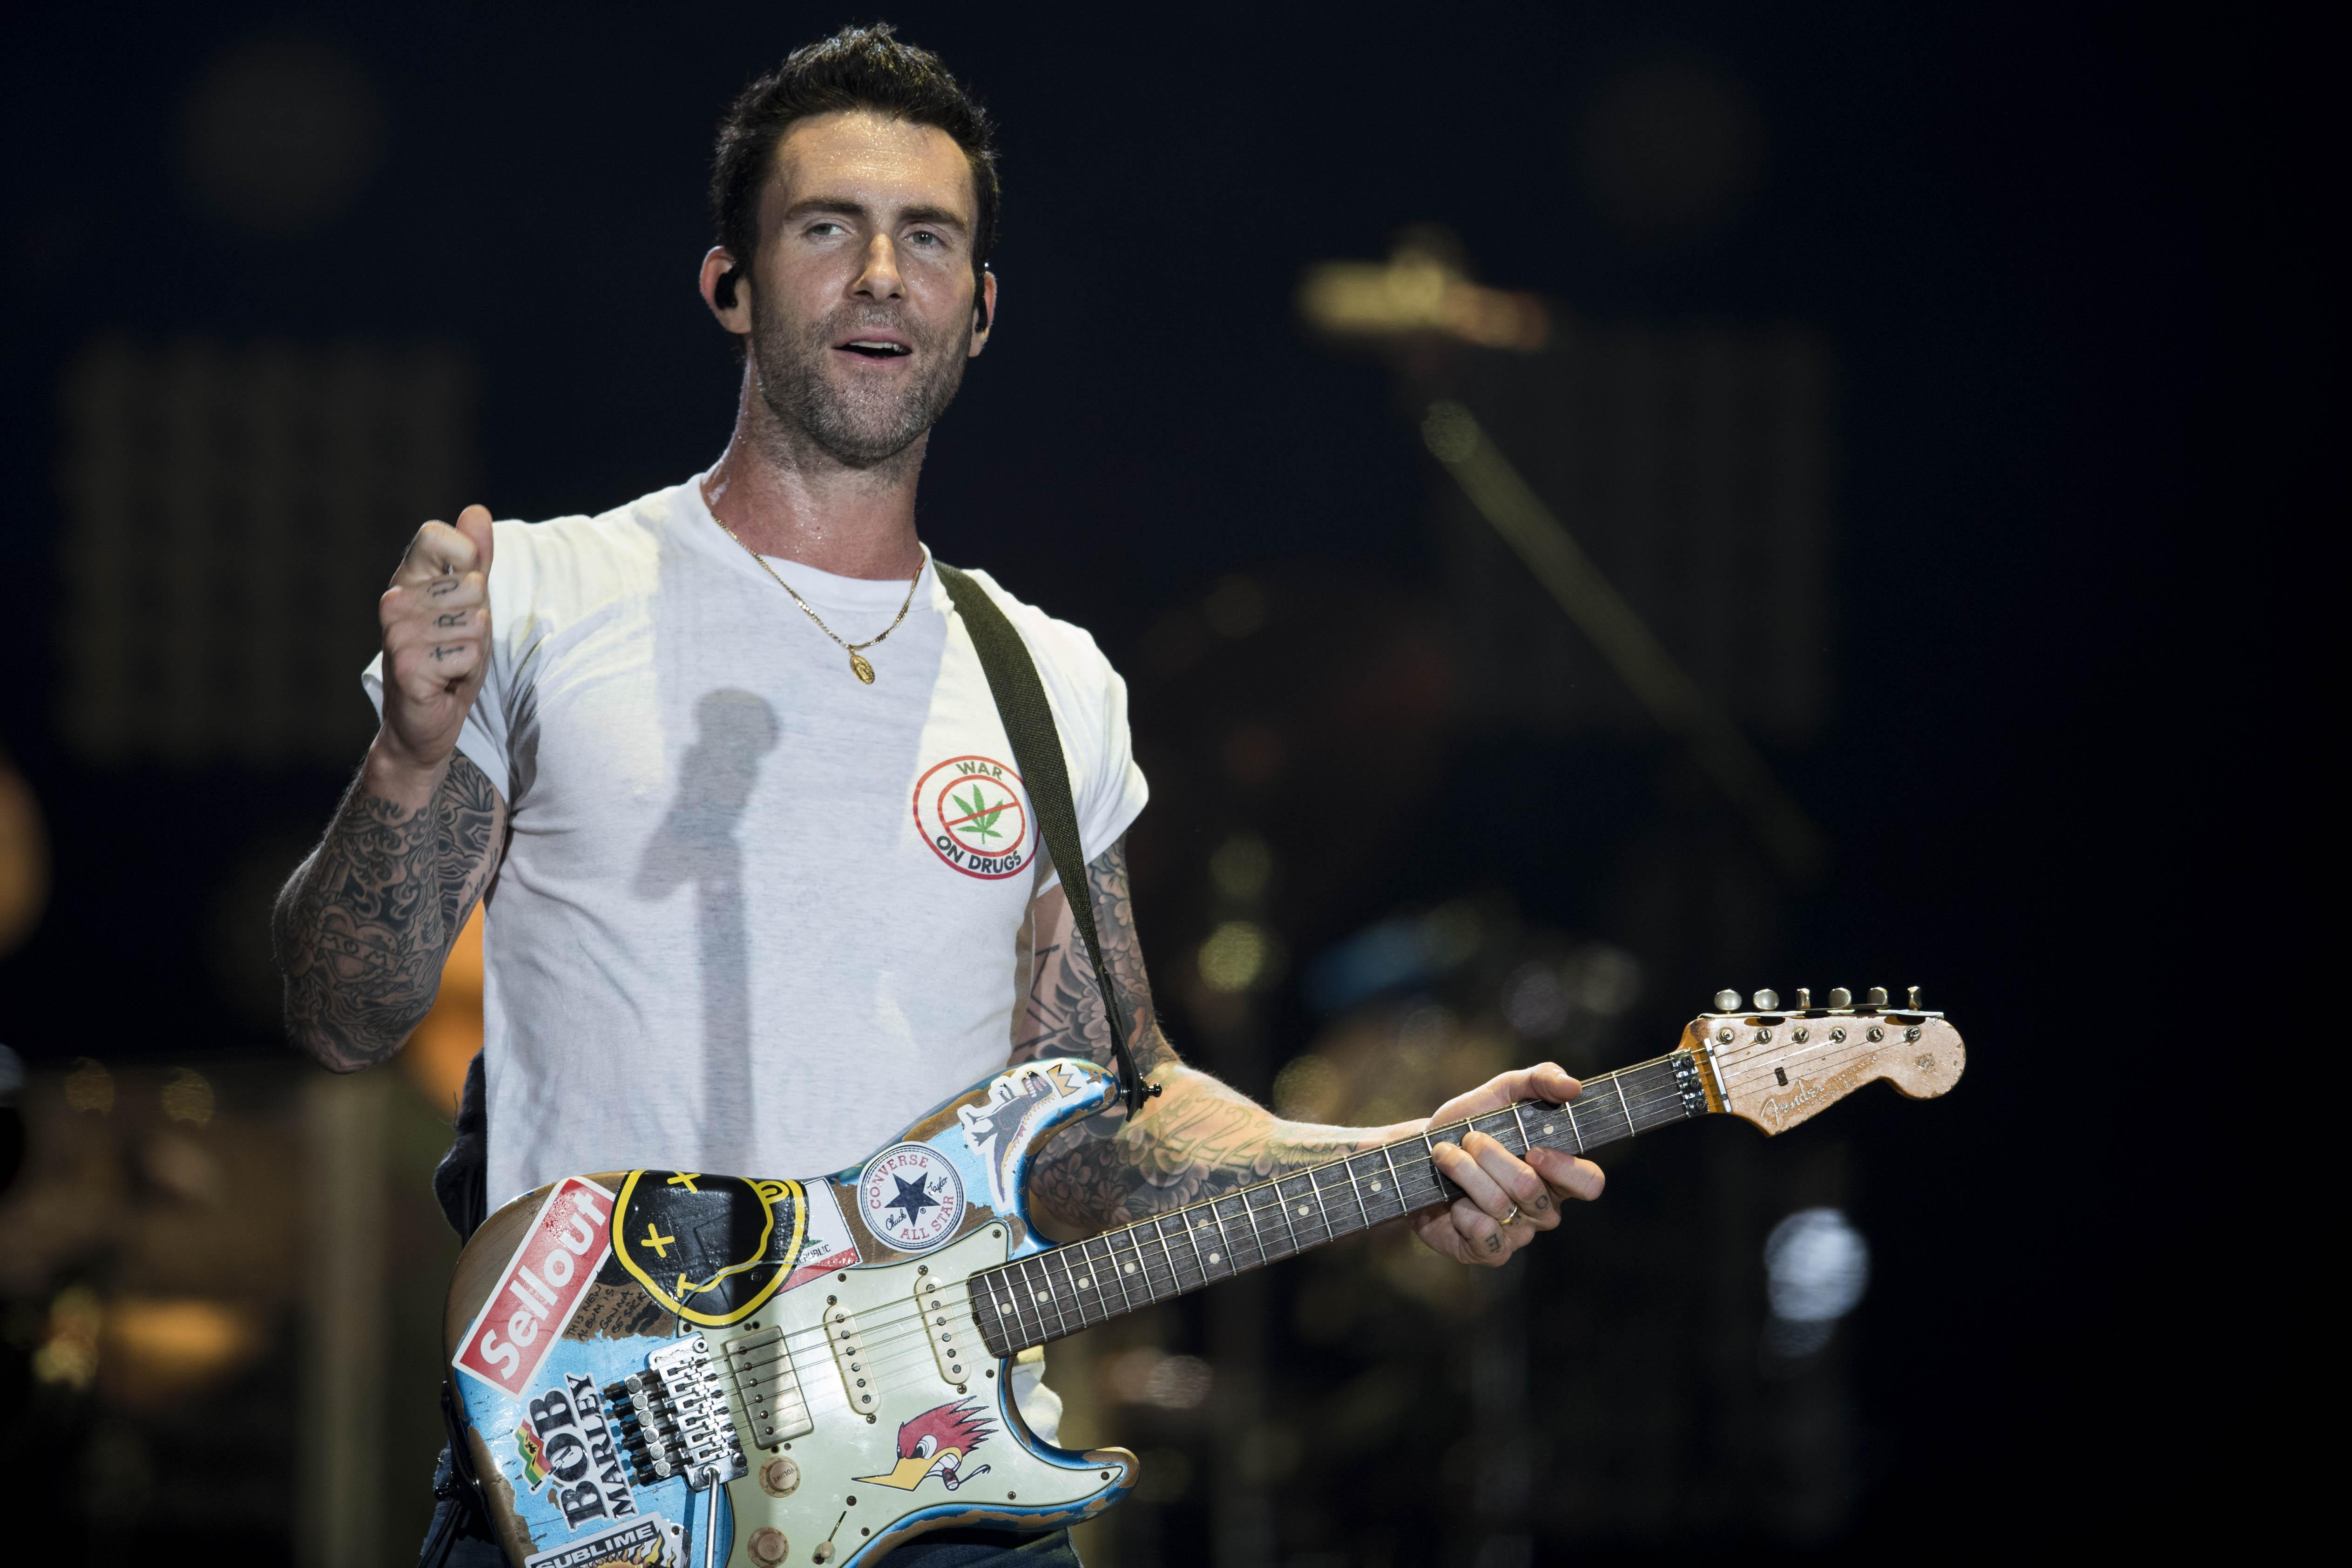 Lead singer of Maroon 5 Adam Levine won't be too happy with some people's reaction to rumours they will be the Super Bowl 2019 half-time entertainment